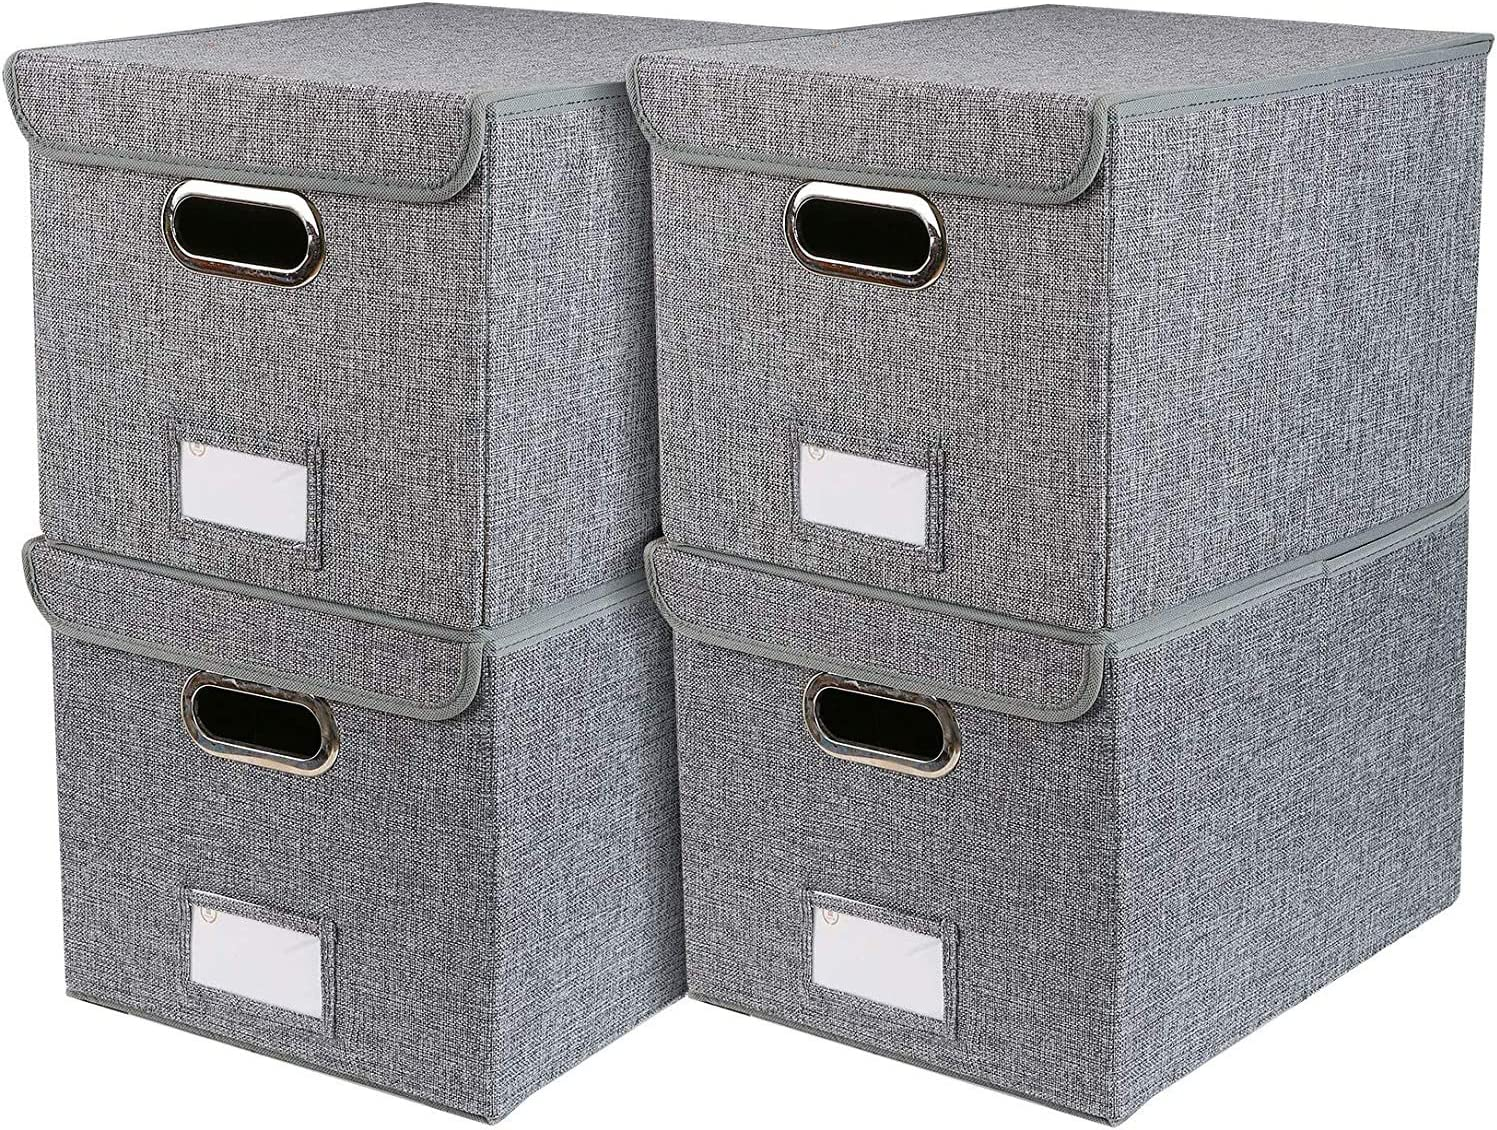 Collapsible File Box with Lid Decorative Documents Storage Organizer with Linen Filing, Home Office Bin, Letter Size Legal Size, Gray,[4-Pack]